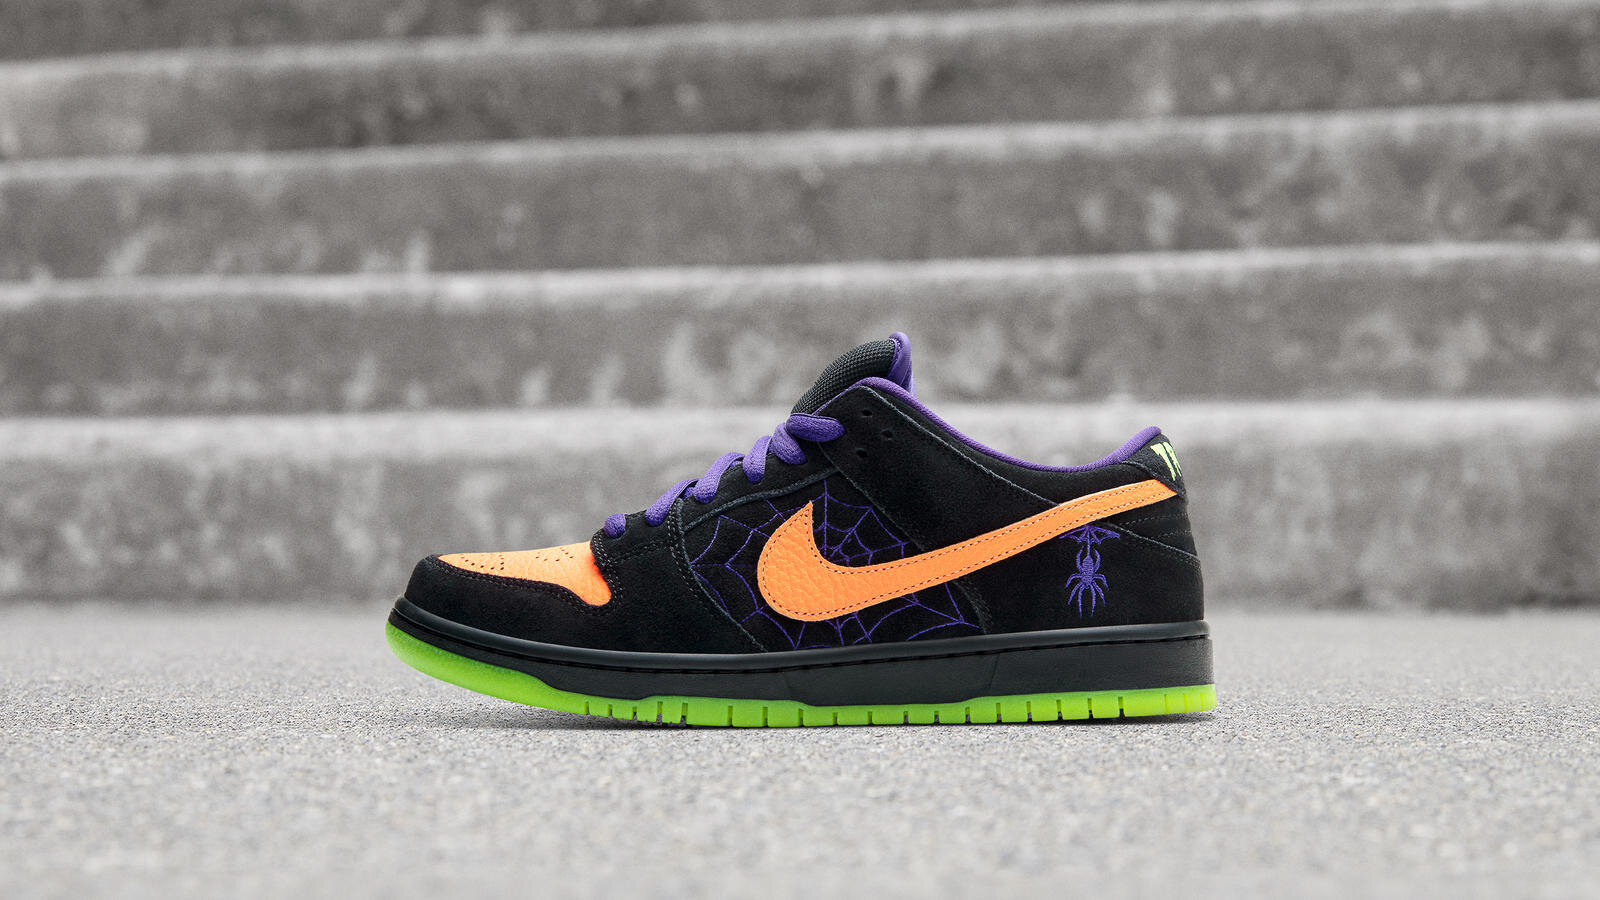 NikeNews_FeaturedFootwear_NikeSB_DunkLo_NightOfMischief_2605_hd_1600.jpg